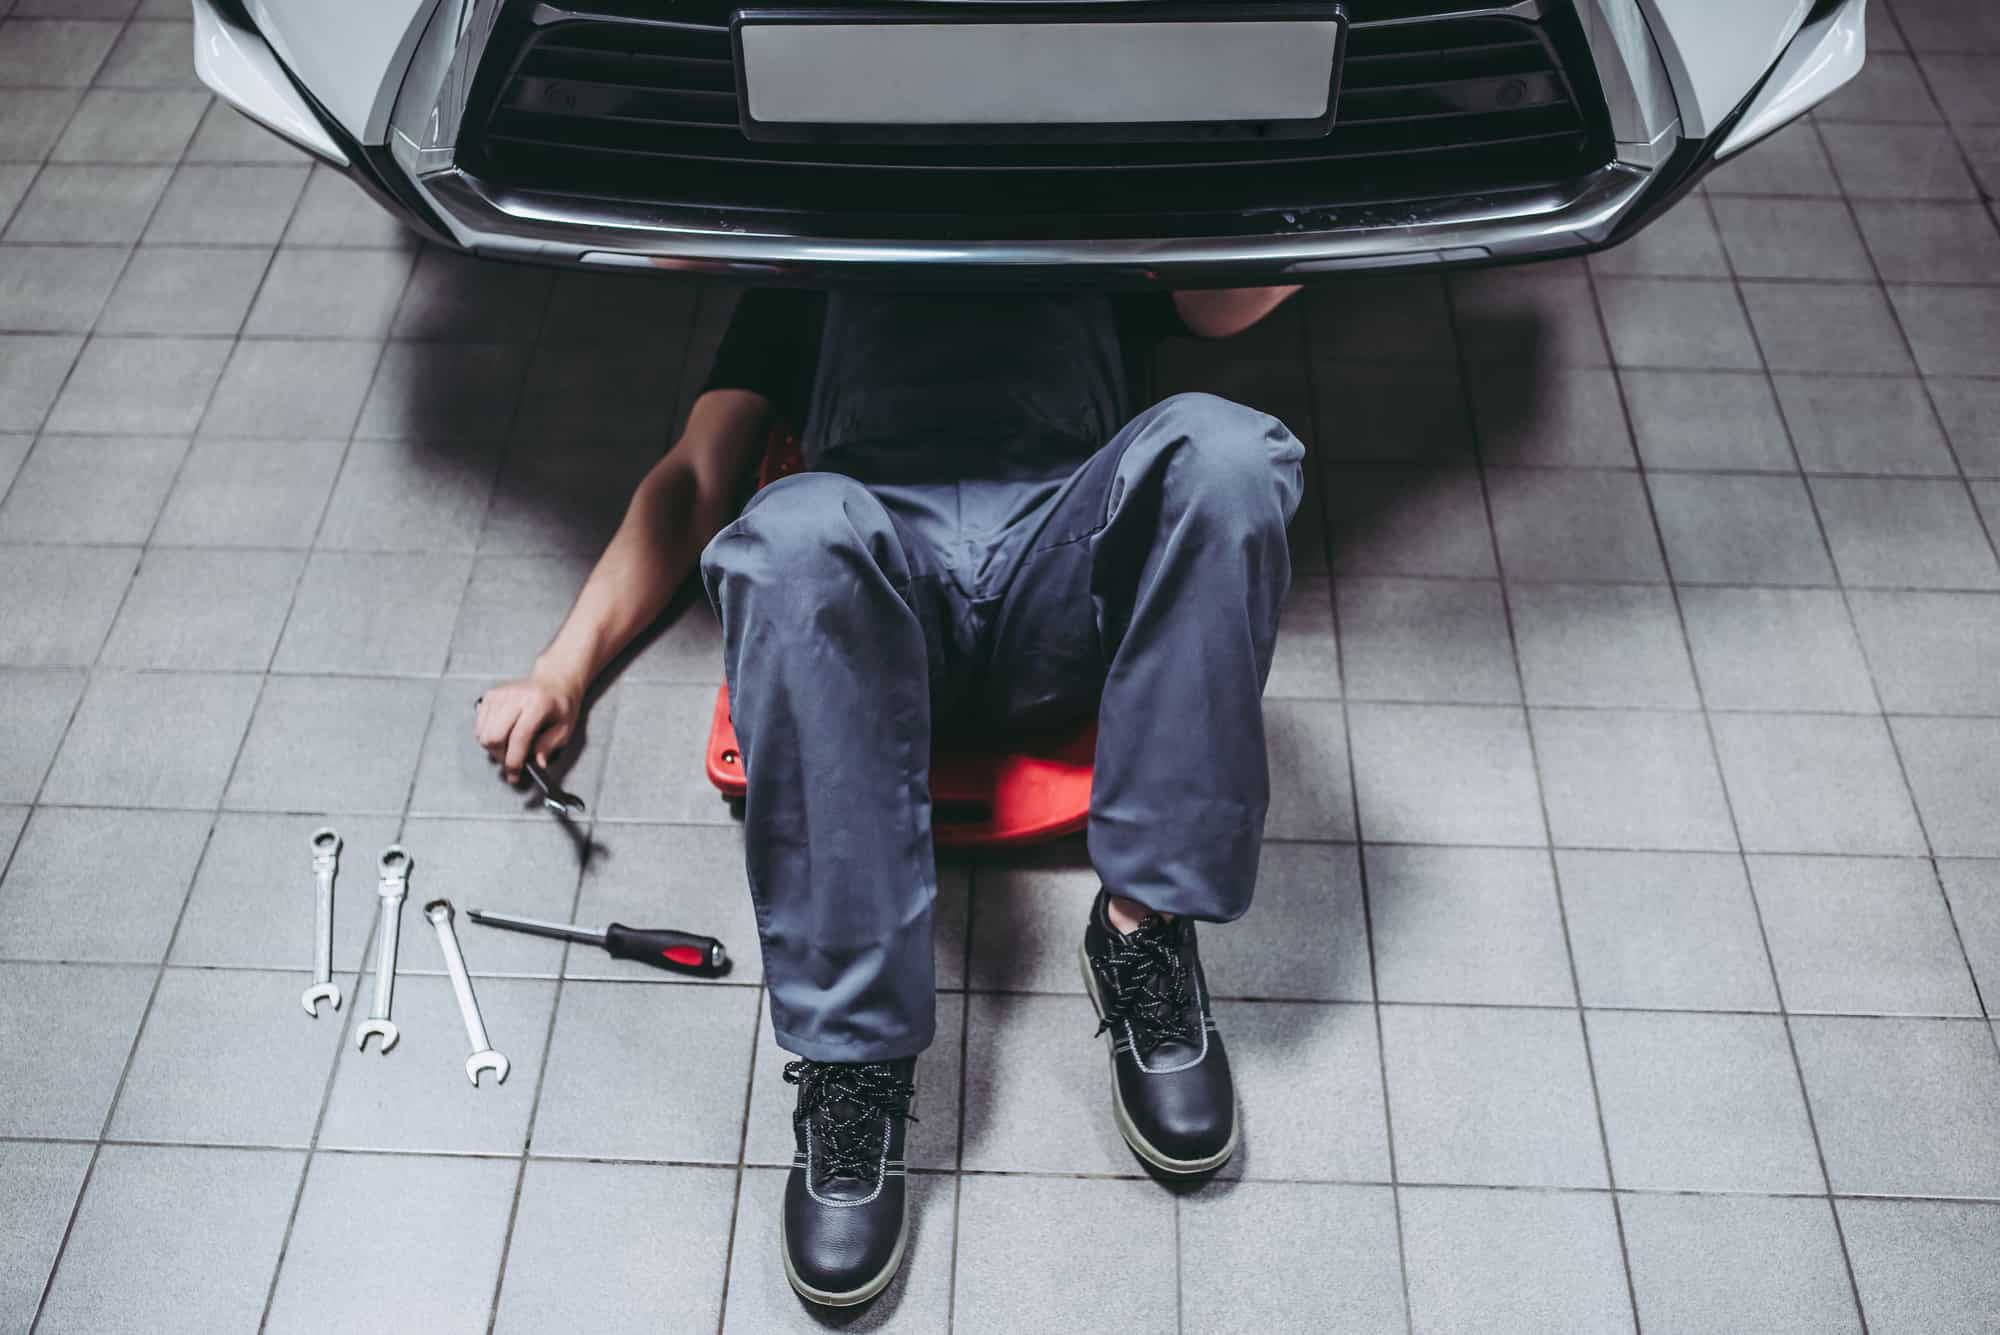 servicing your car yourself